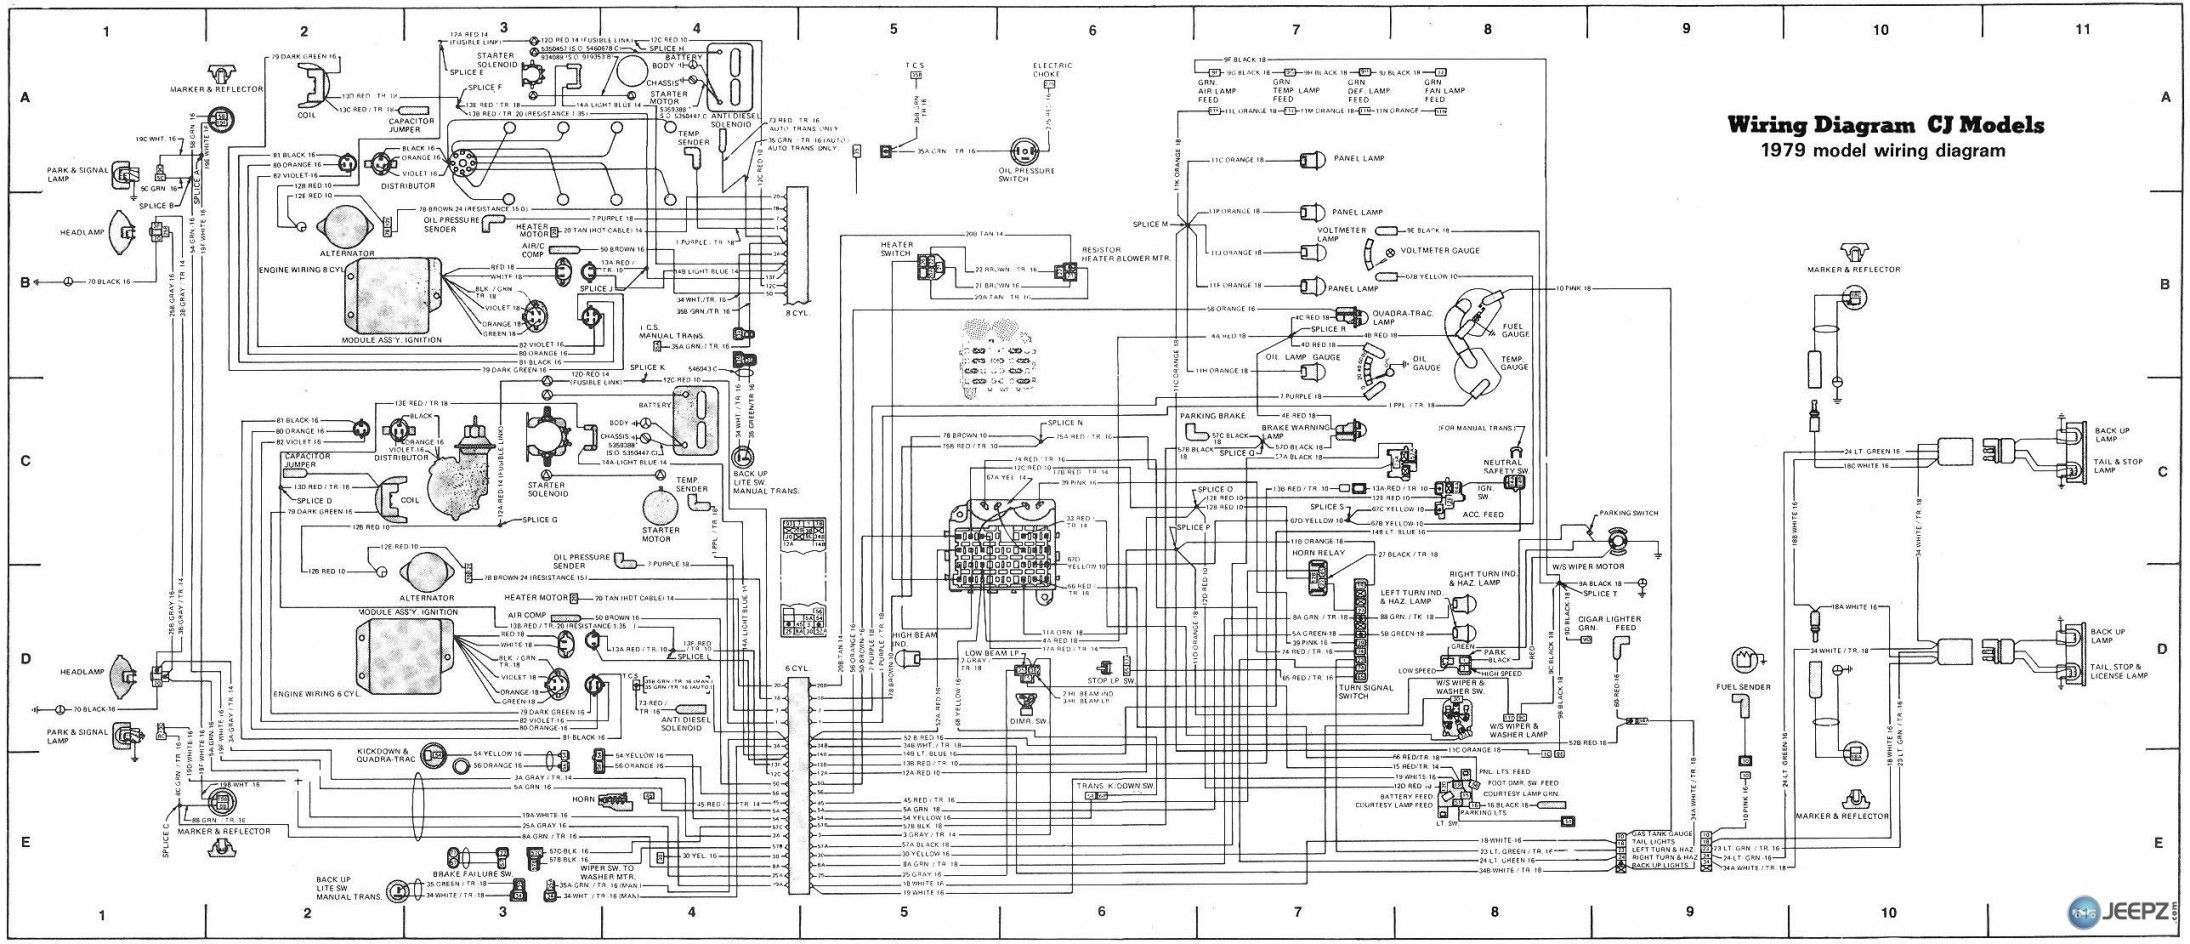 image for best 1979 jeep cj7 wiring diagram wiring diagram rh pinterest com 1979 jeep cj7 ignition wiring diagram